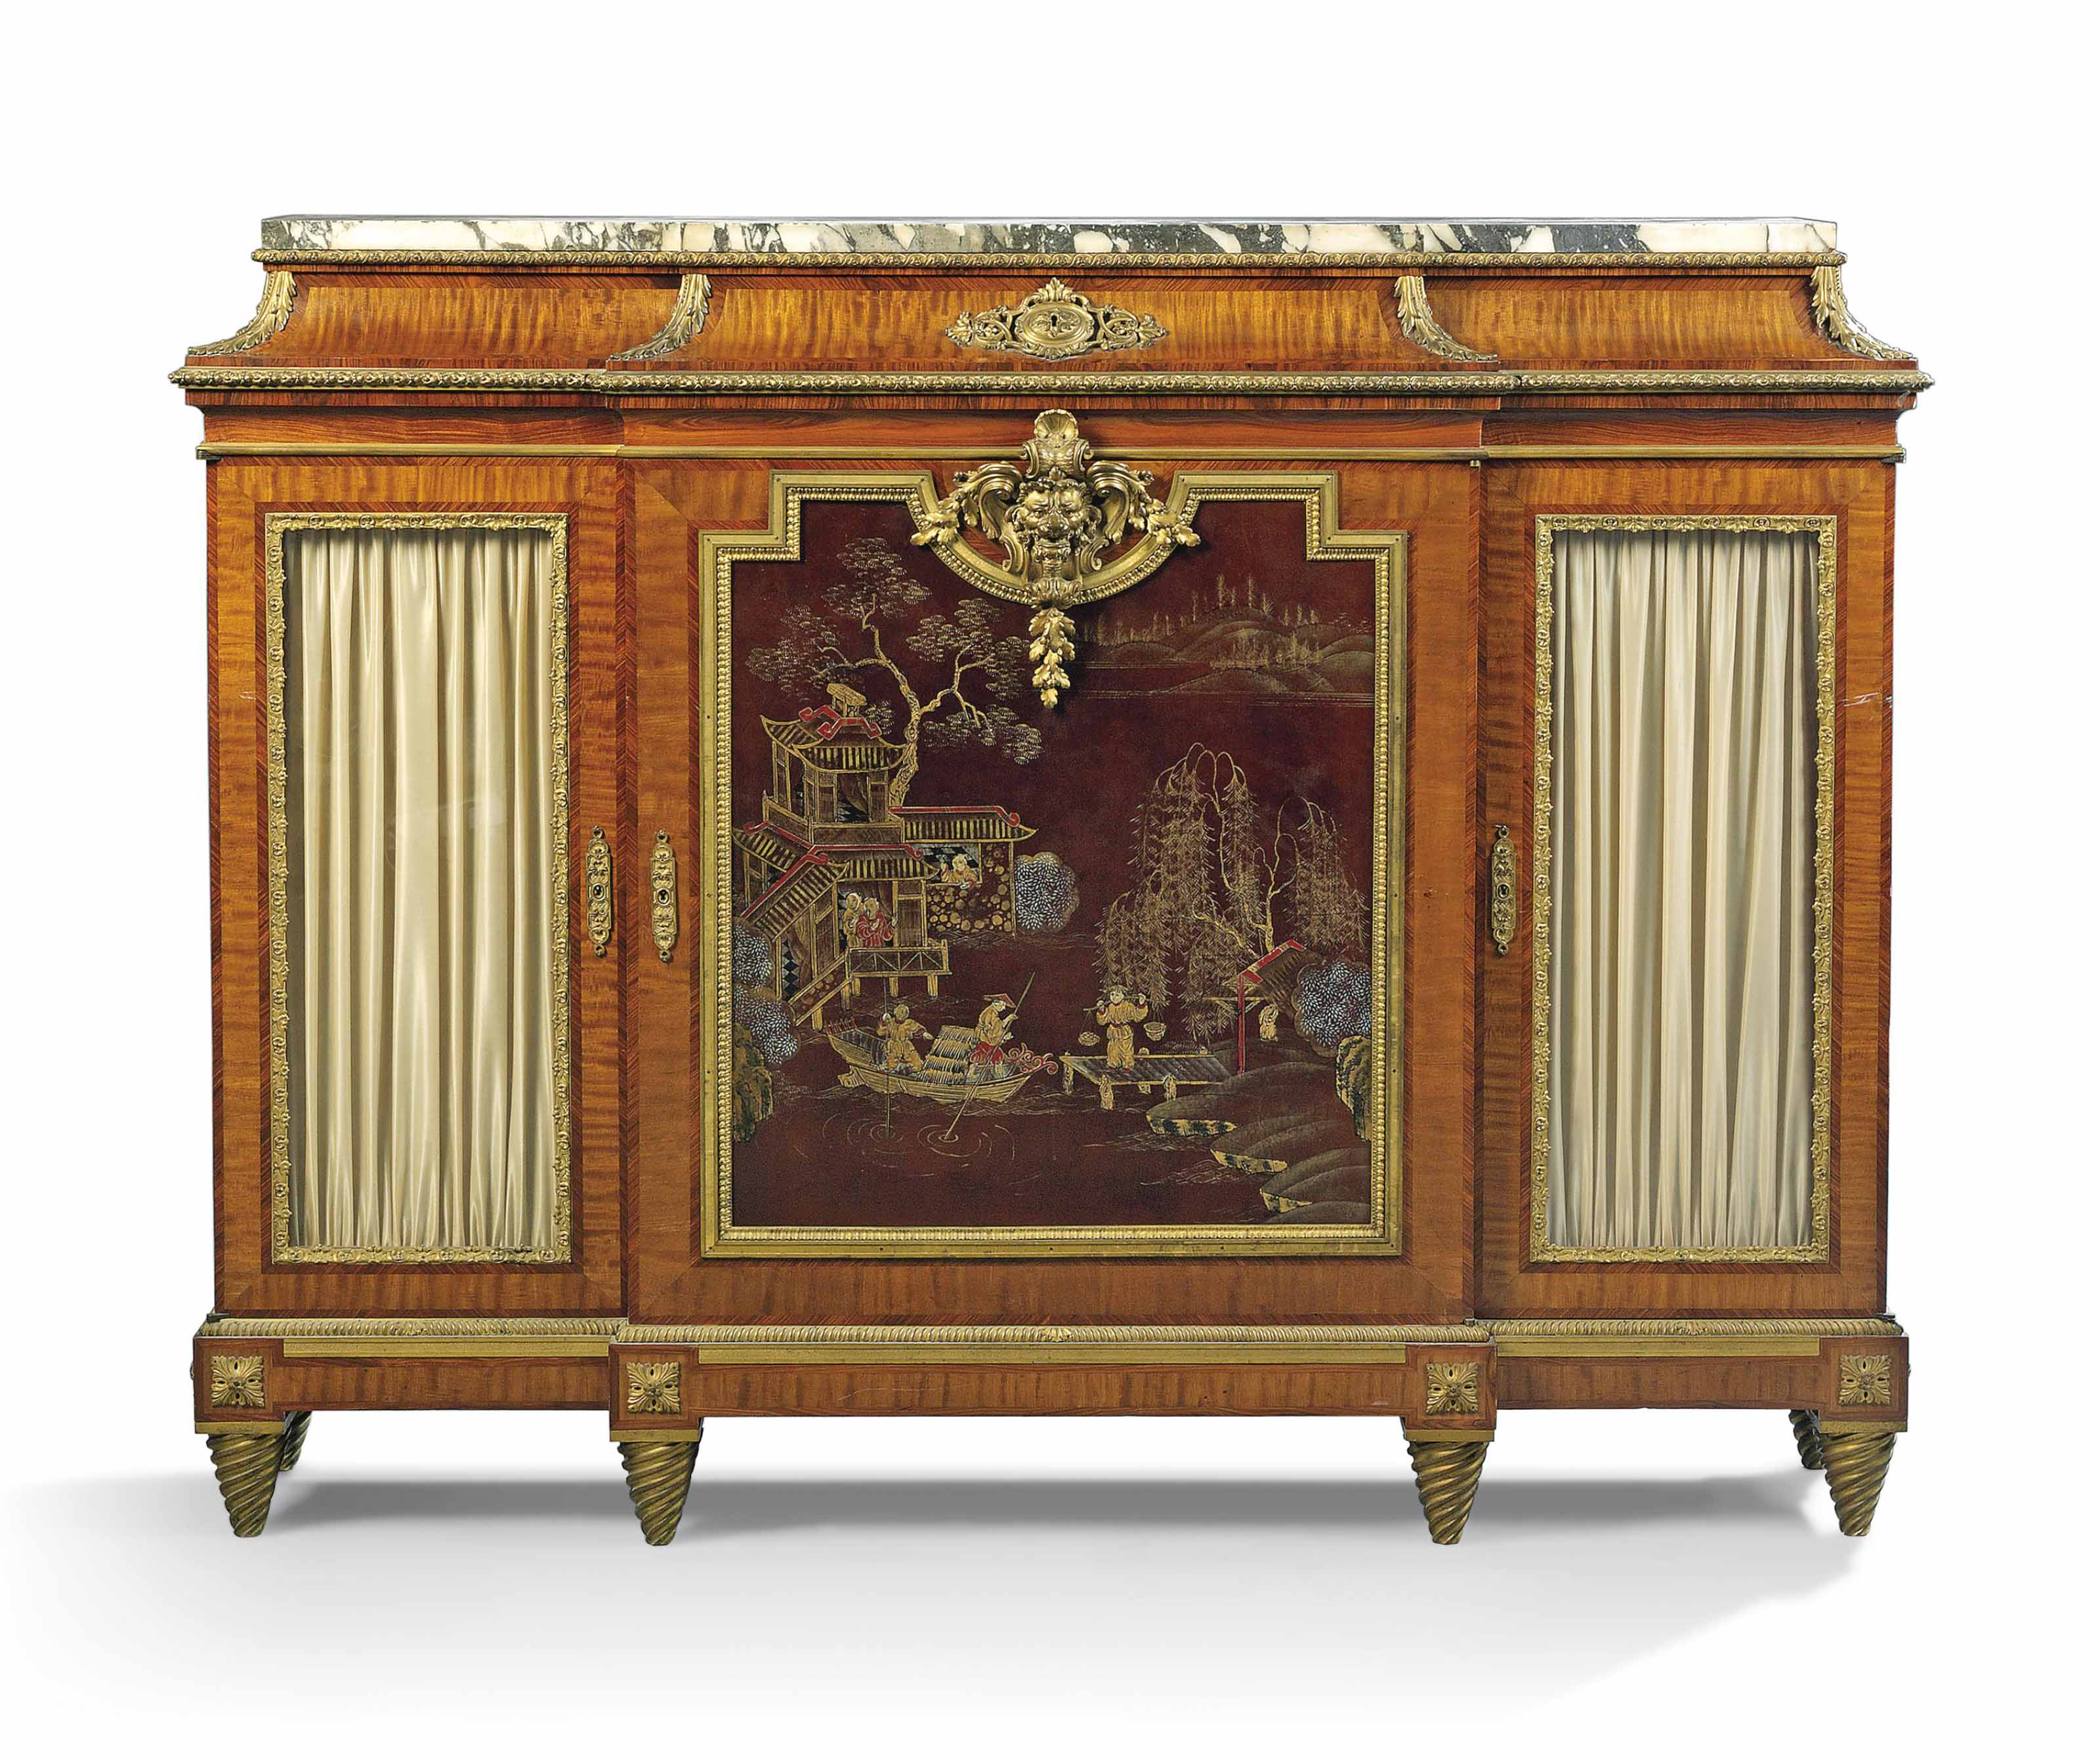 A FRENCH ORMOLU-MOUNTED CHINESE LACQUER AND KINGWOOD MEUBLE A HAUTEUR D'APPUI